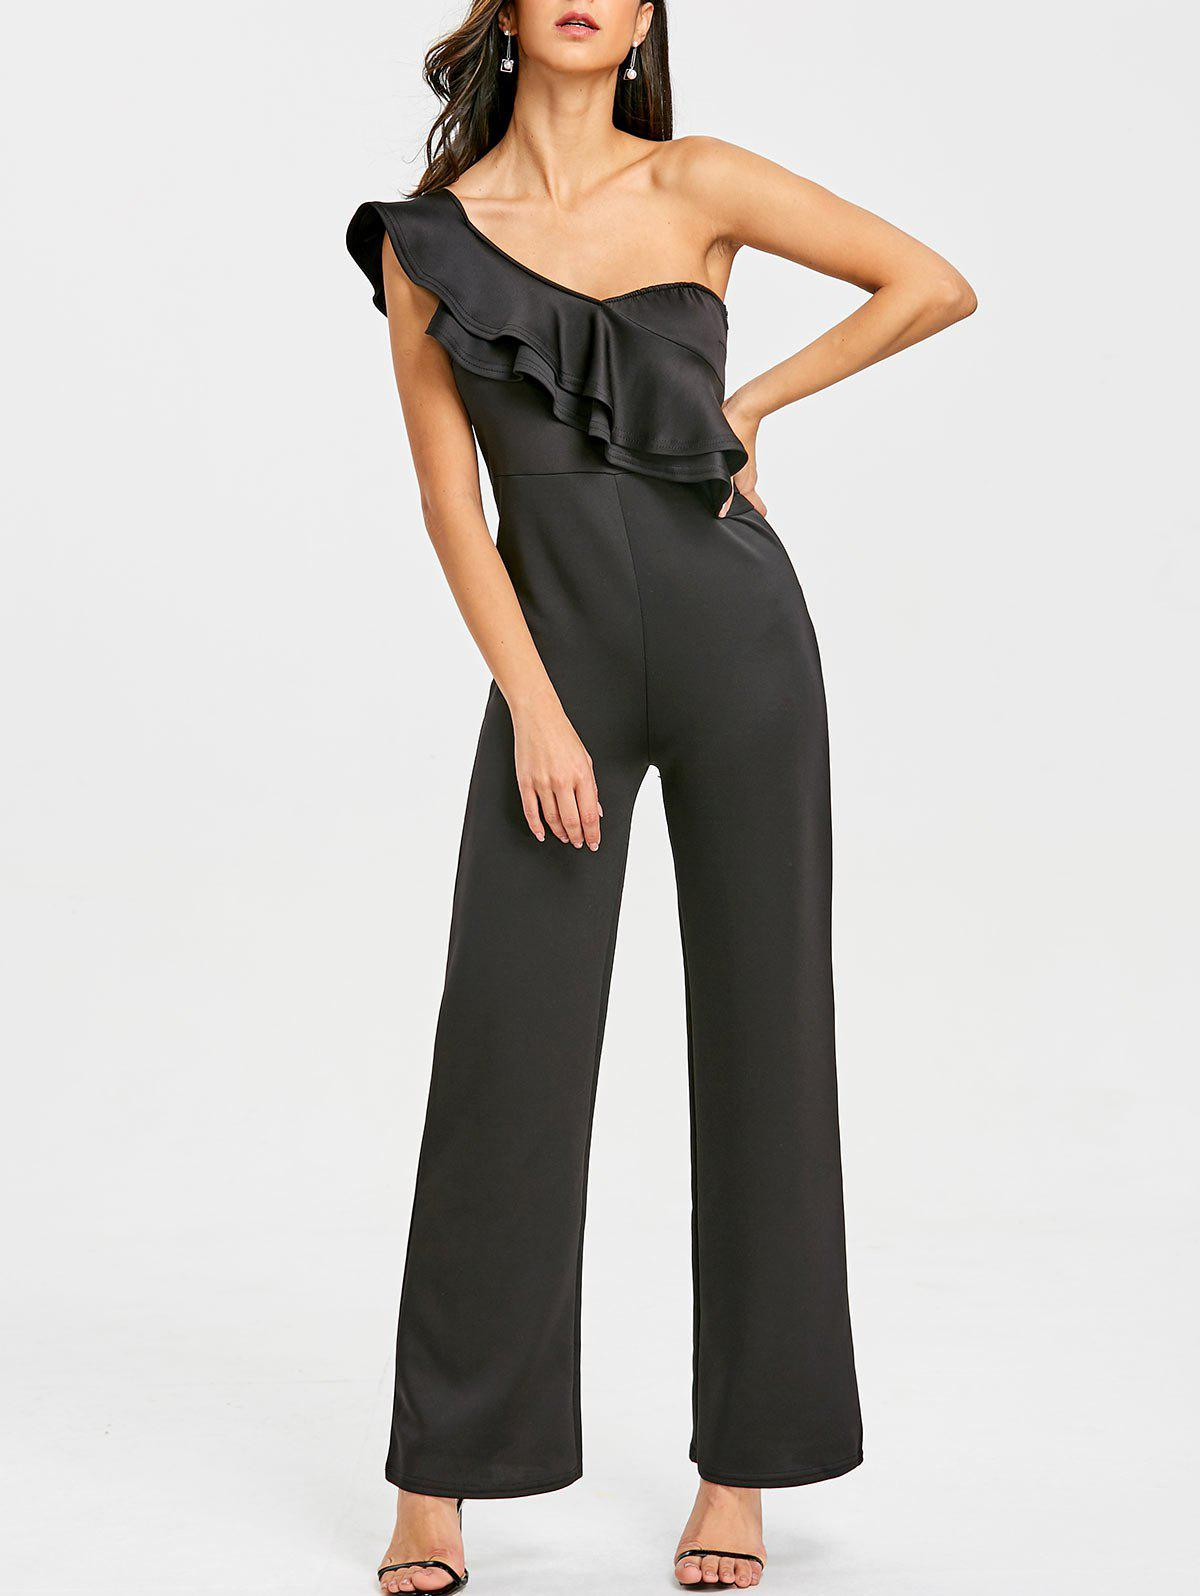 One Shoulder Flounce Wide Leg Jumpsuit arte lamp потолочная люстра arte lamp alessandra a5004pl 3wg